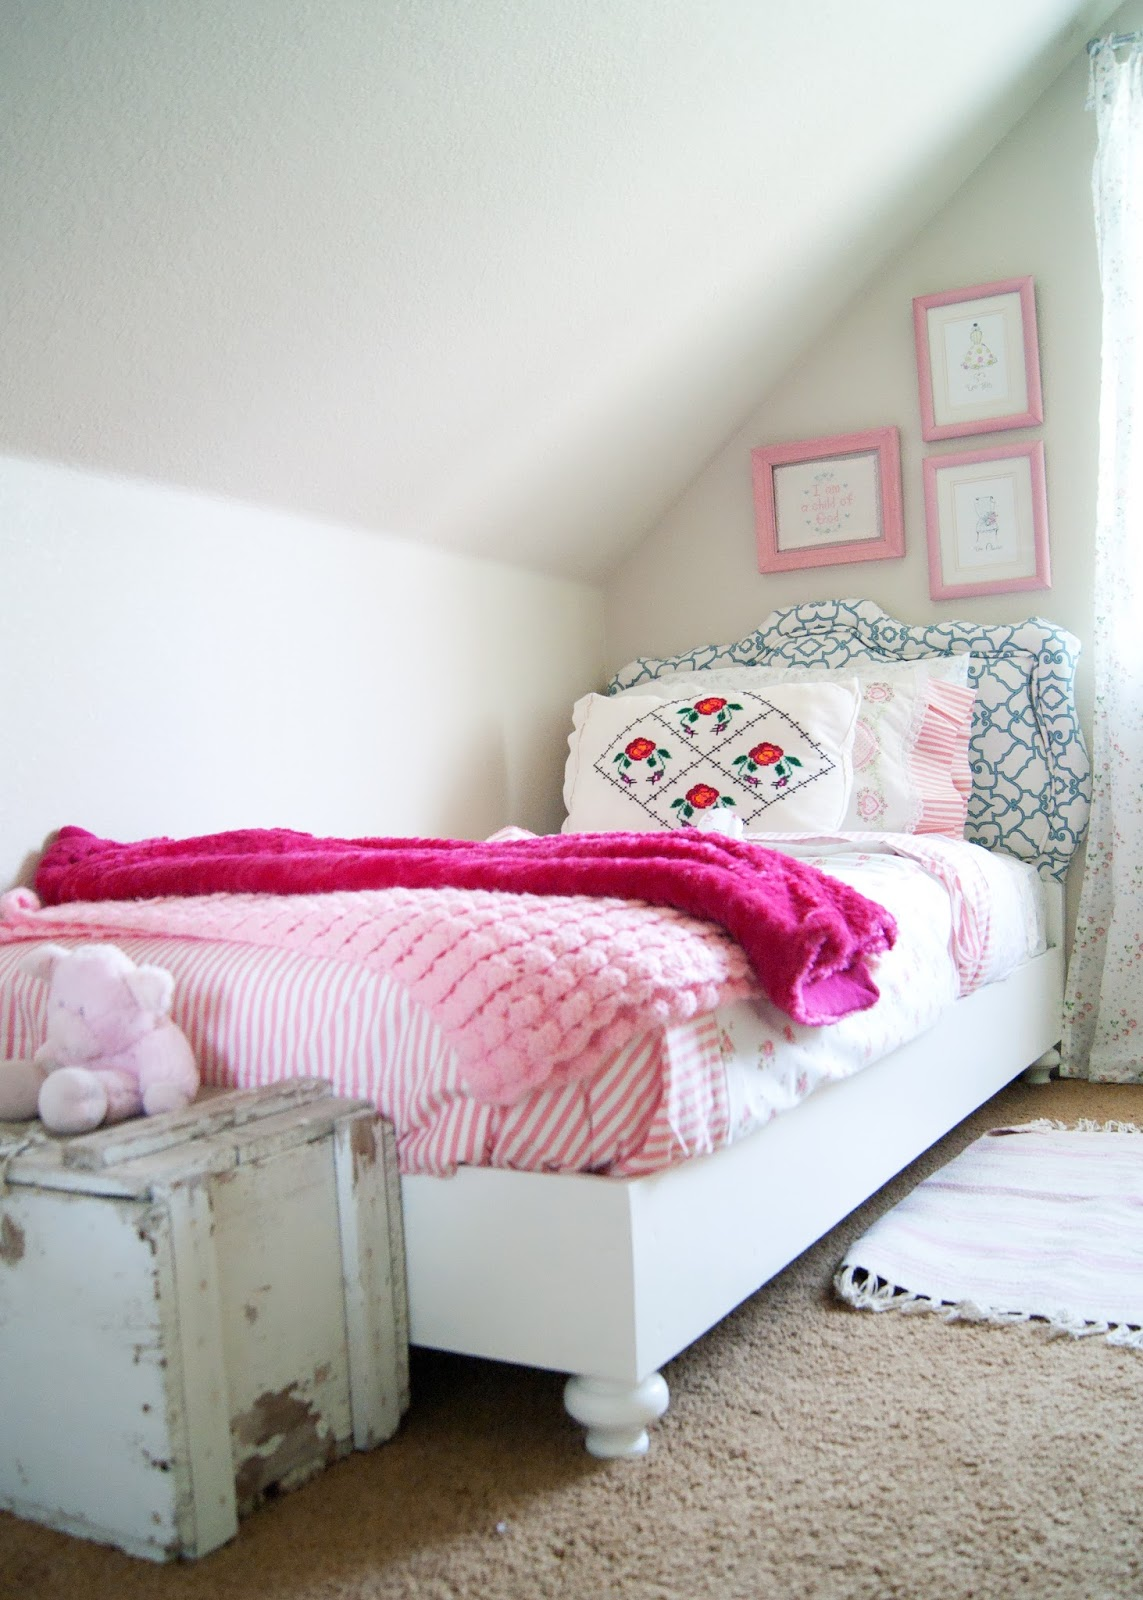 Attic bedroom - granny chic